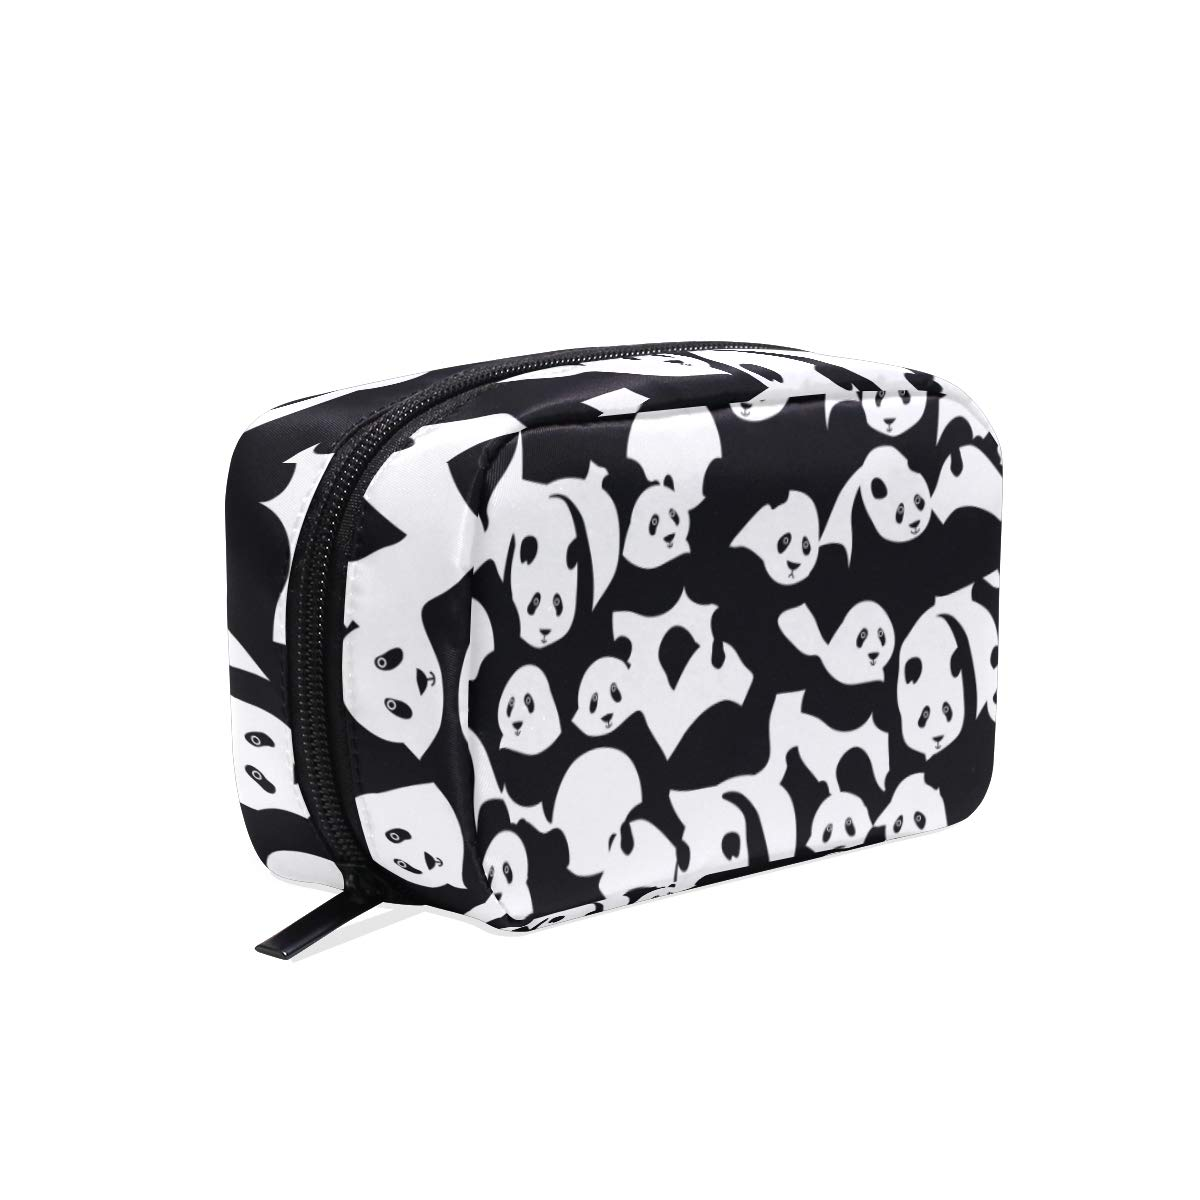 Women's Makeup Cosmetic Bag Panda Black White Makeup Pouch for Travel Cosmetic Pouch Purse(904g)